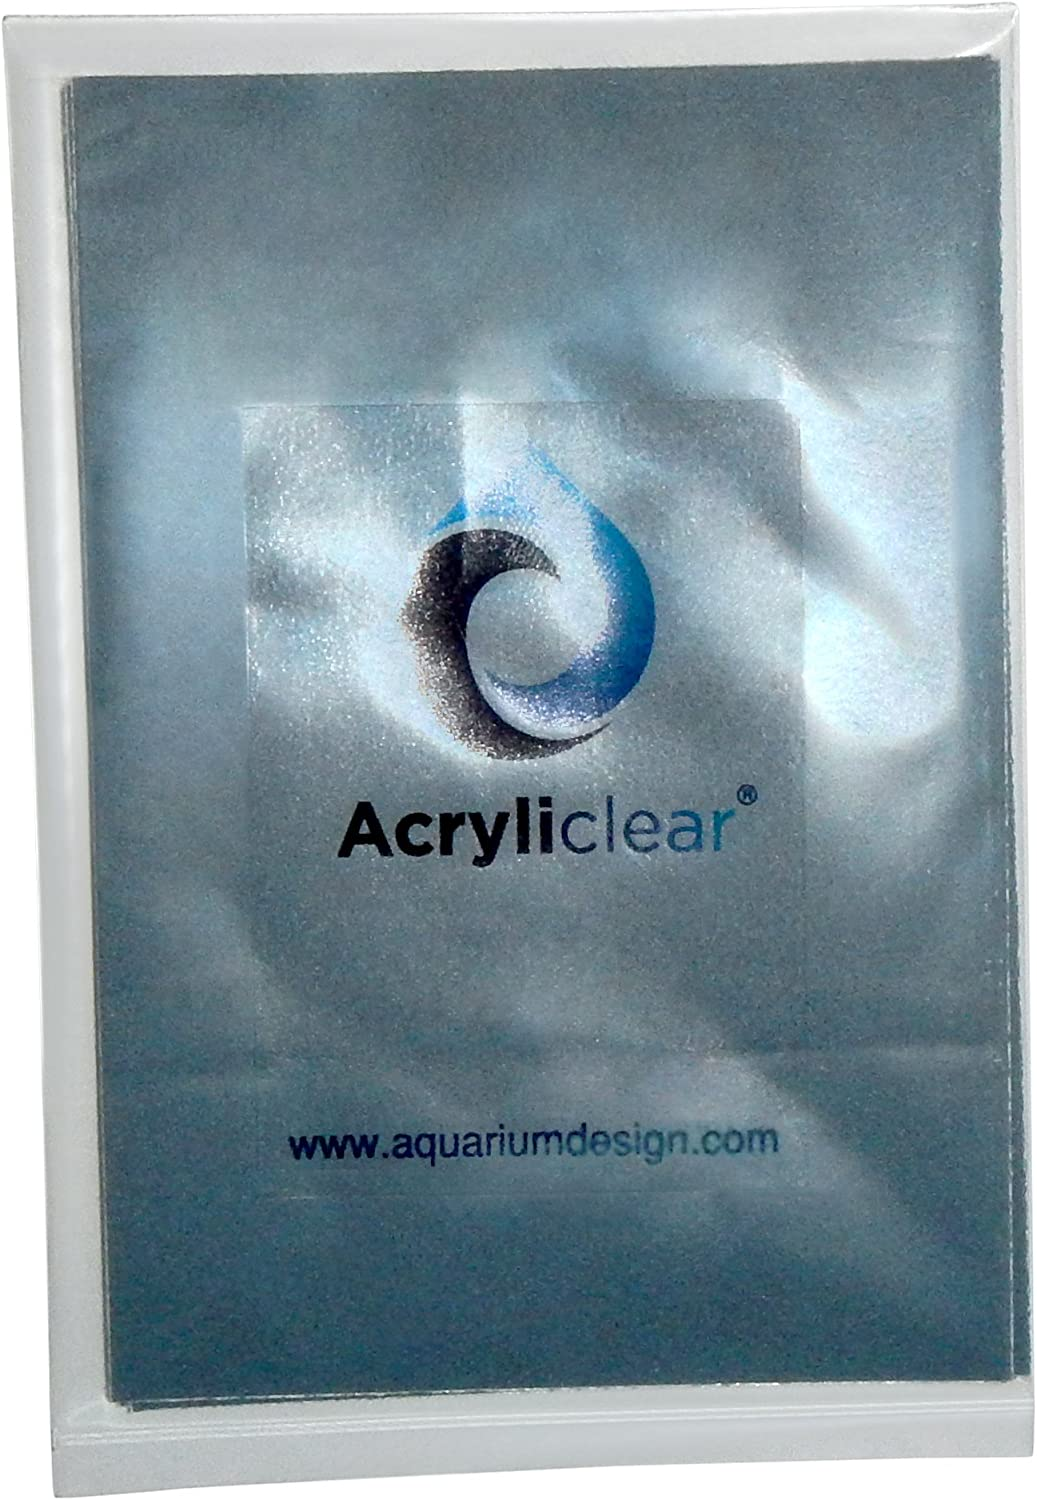 Acryliclear Silicone Carbide Self Stick, 1200 Grit